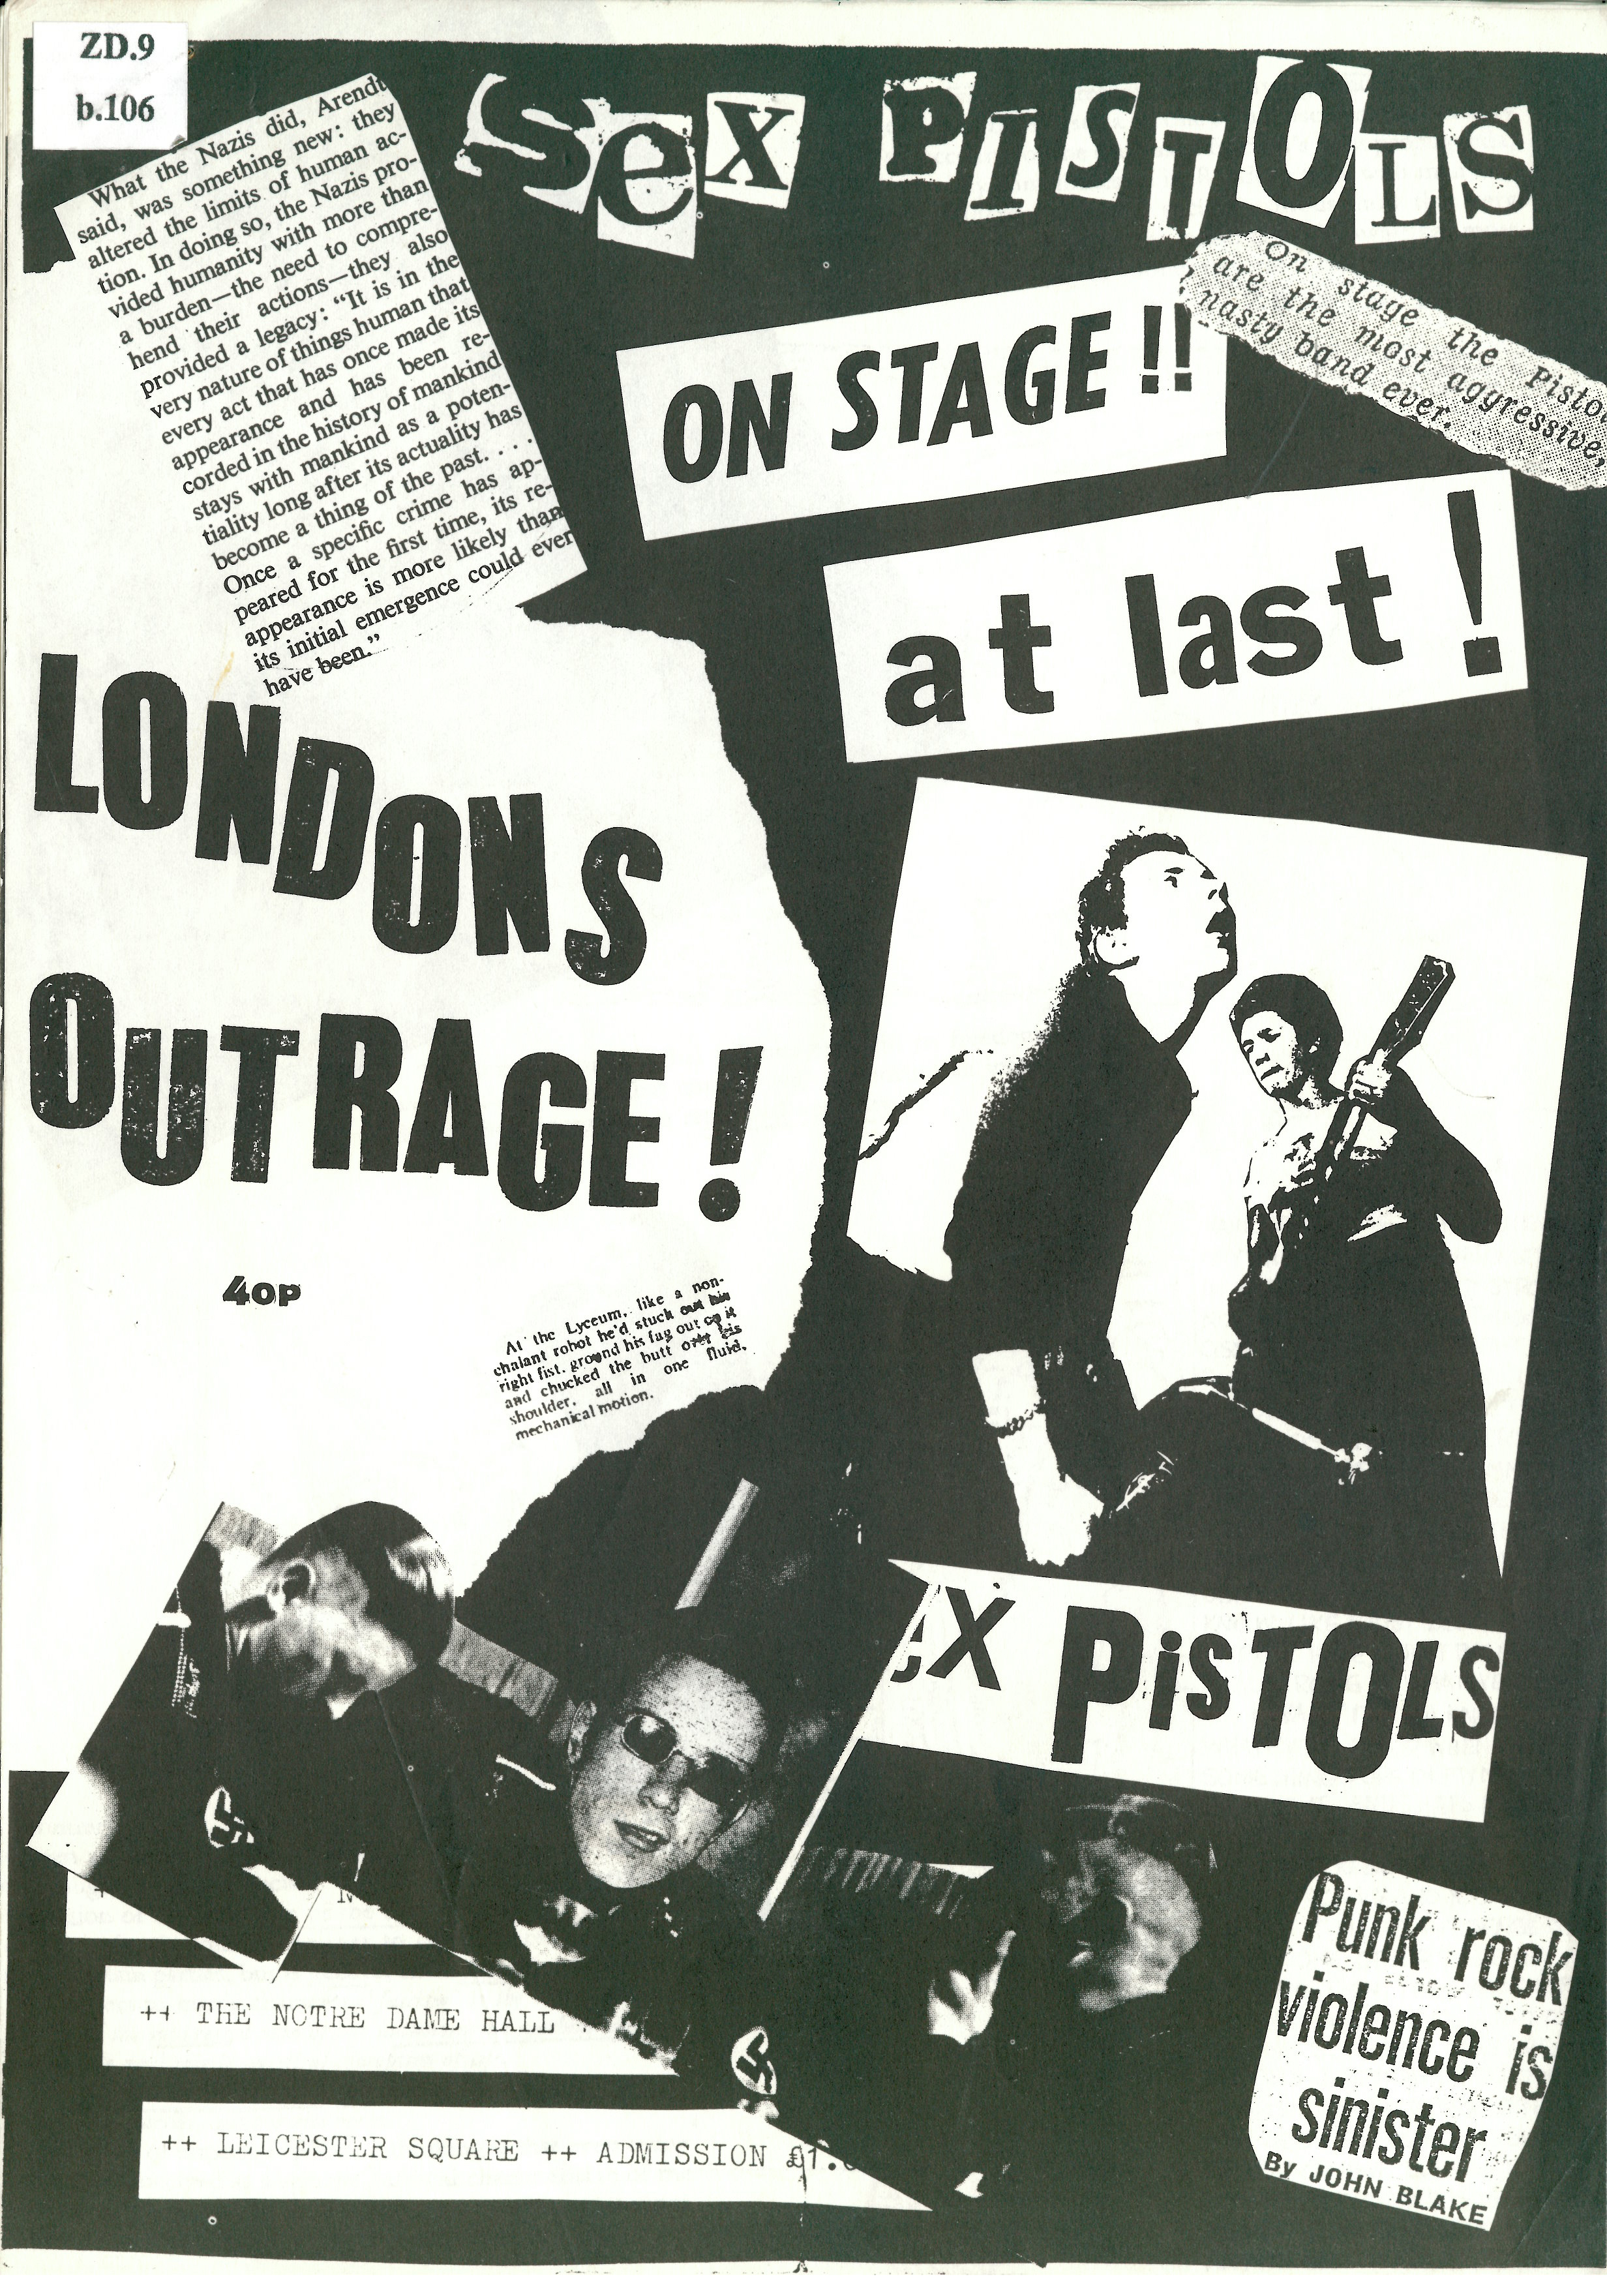 London's Outrage fanzine (December 1976) by Jon Savage on display at Punk 1976-78 at the British Library